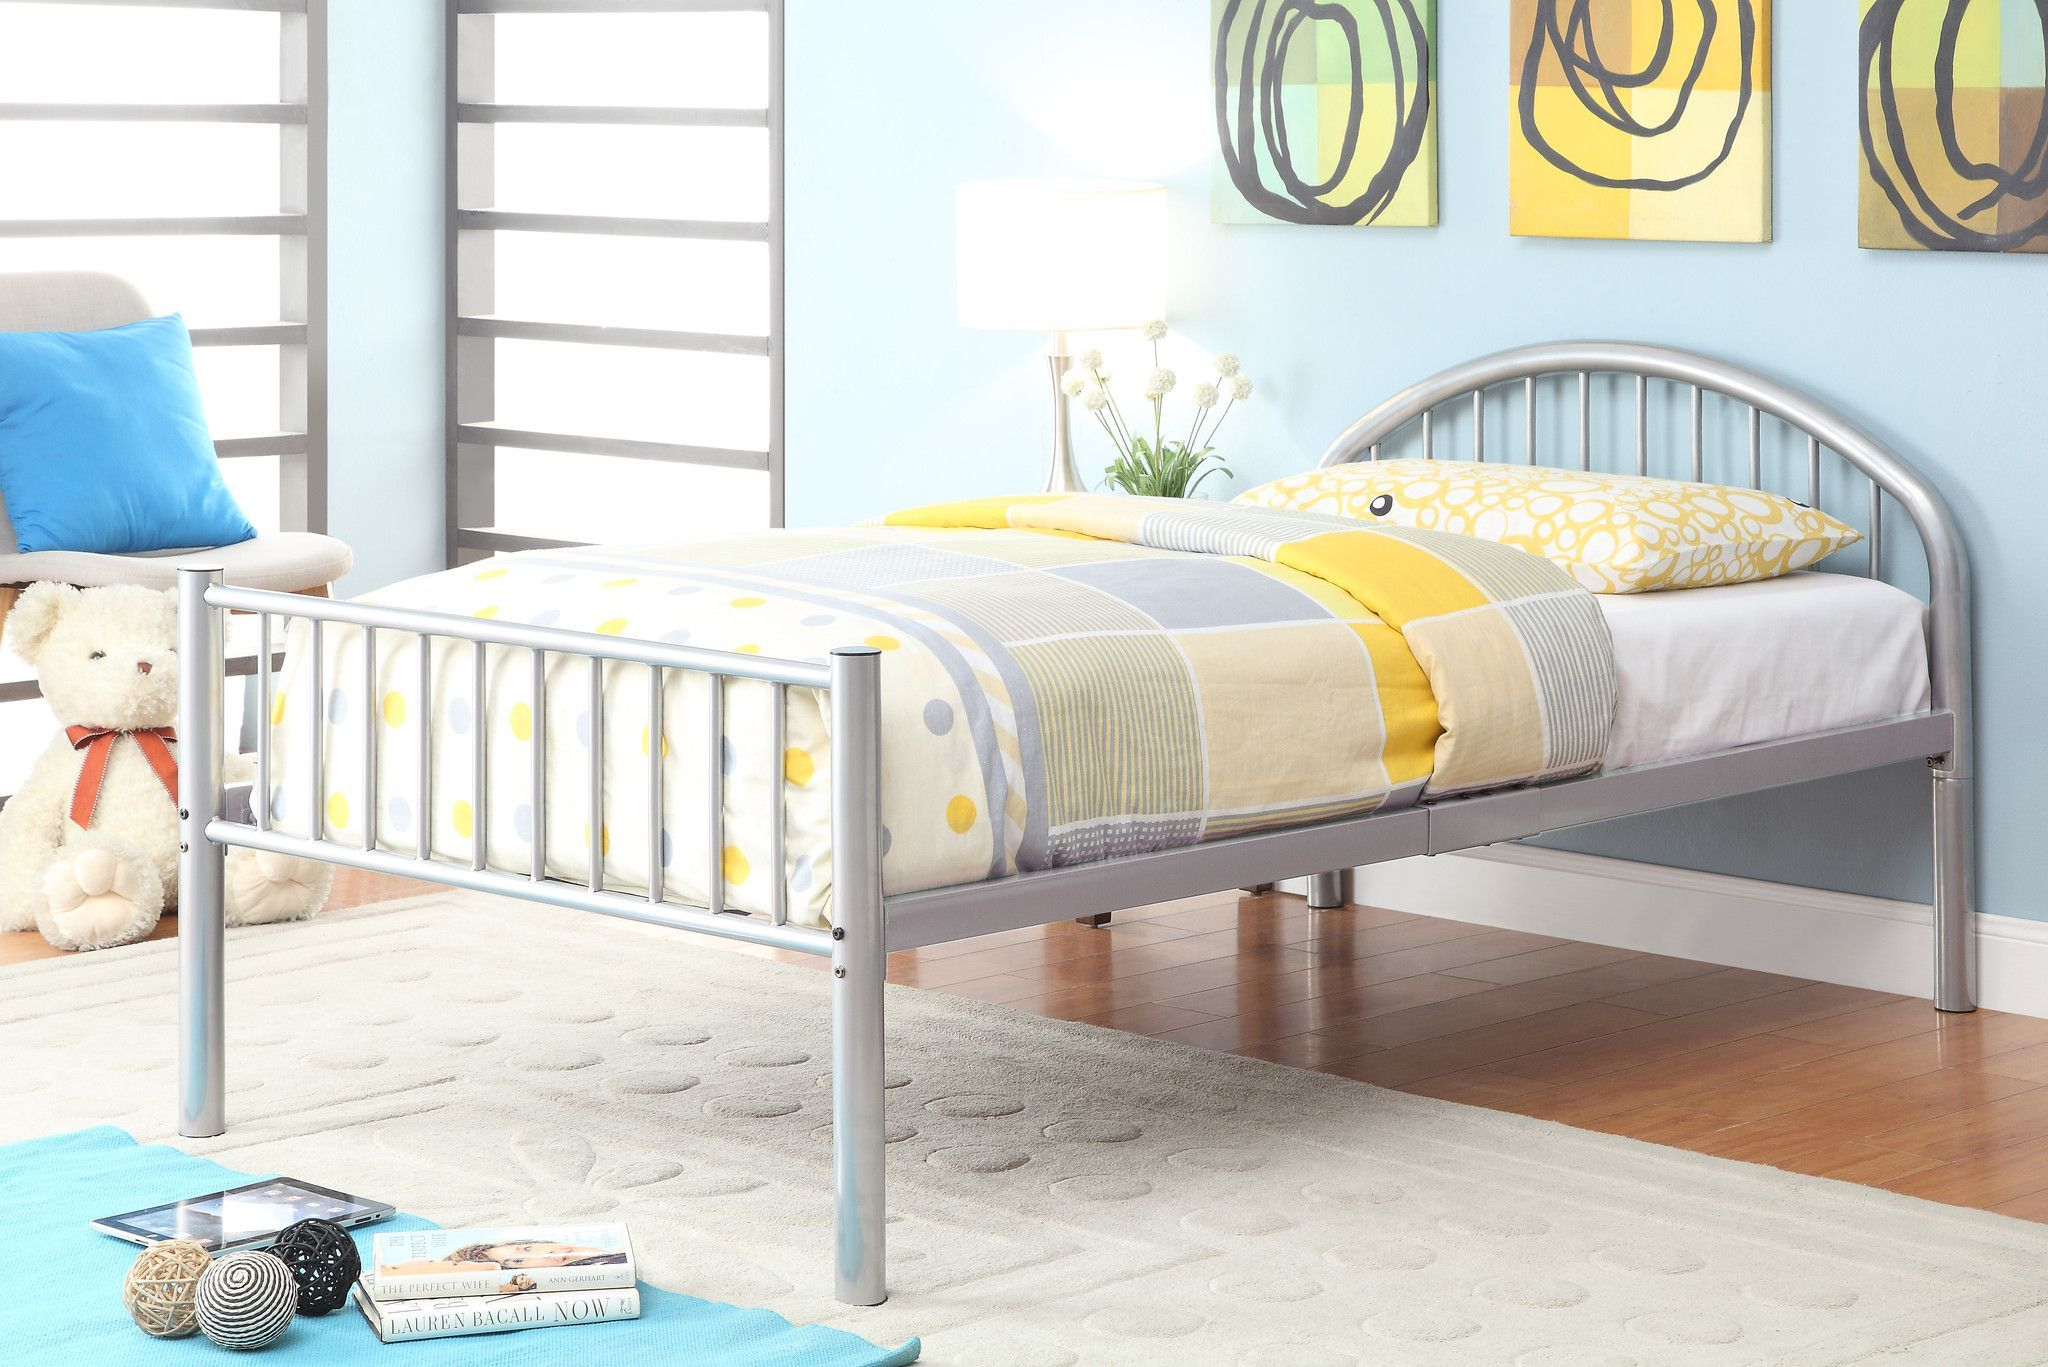 Alloway Contemporary Twin Bed in Silver Furniture, Bed